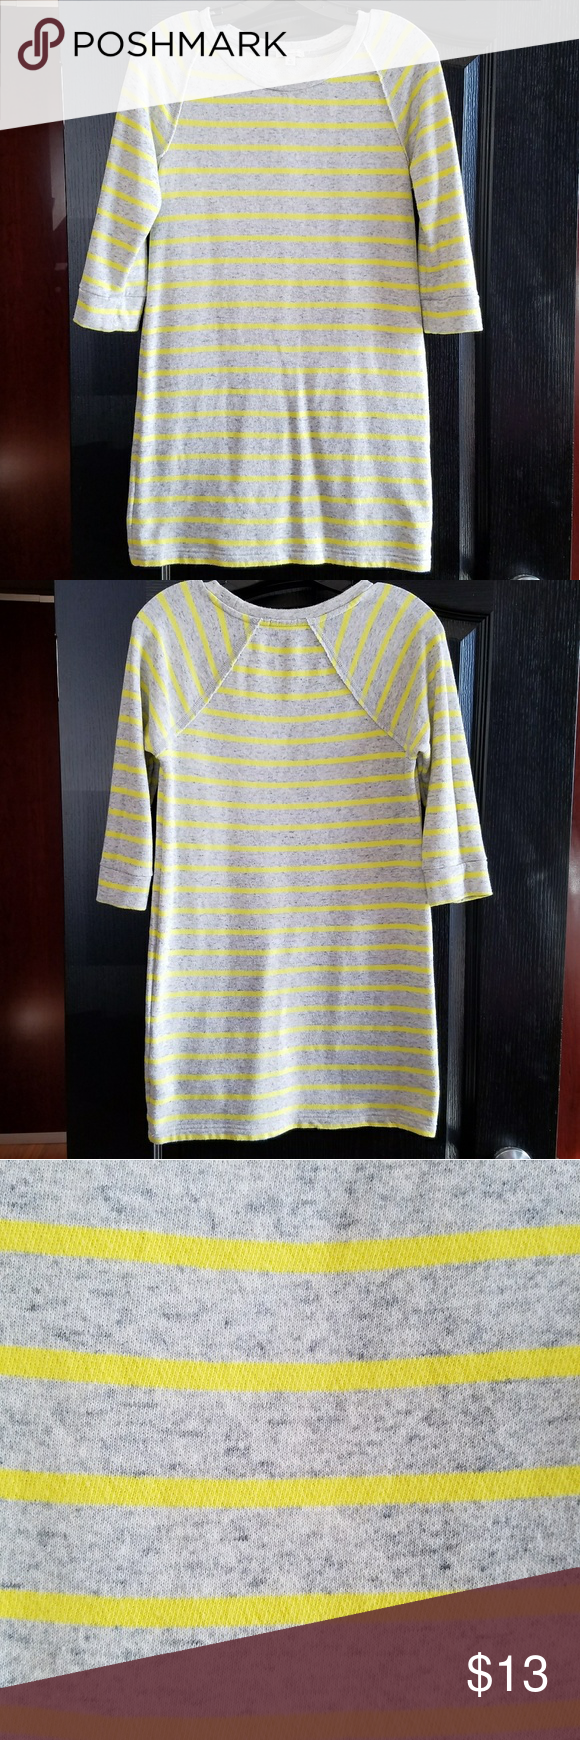 Gap sweatshirt dress grayyellow striped gap sweatshirt dress gap